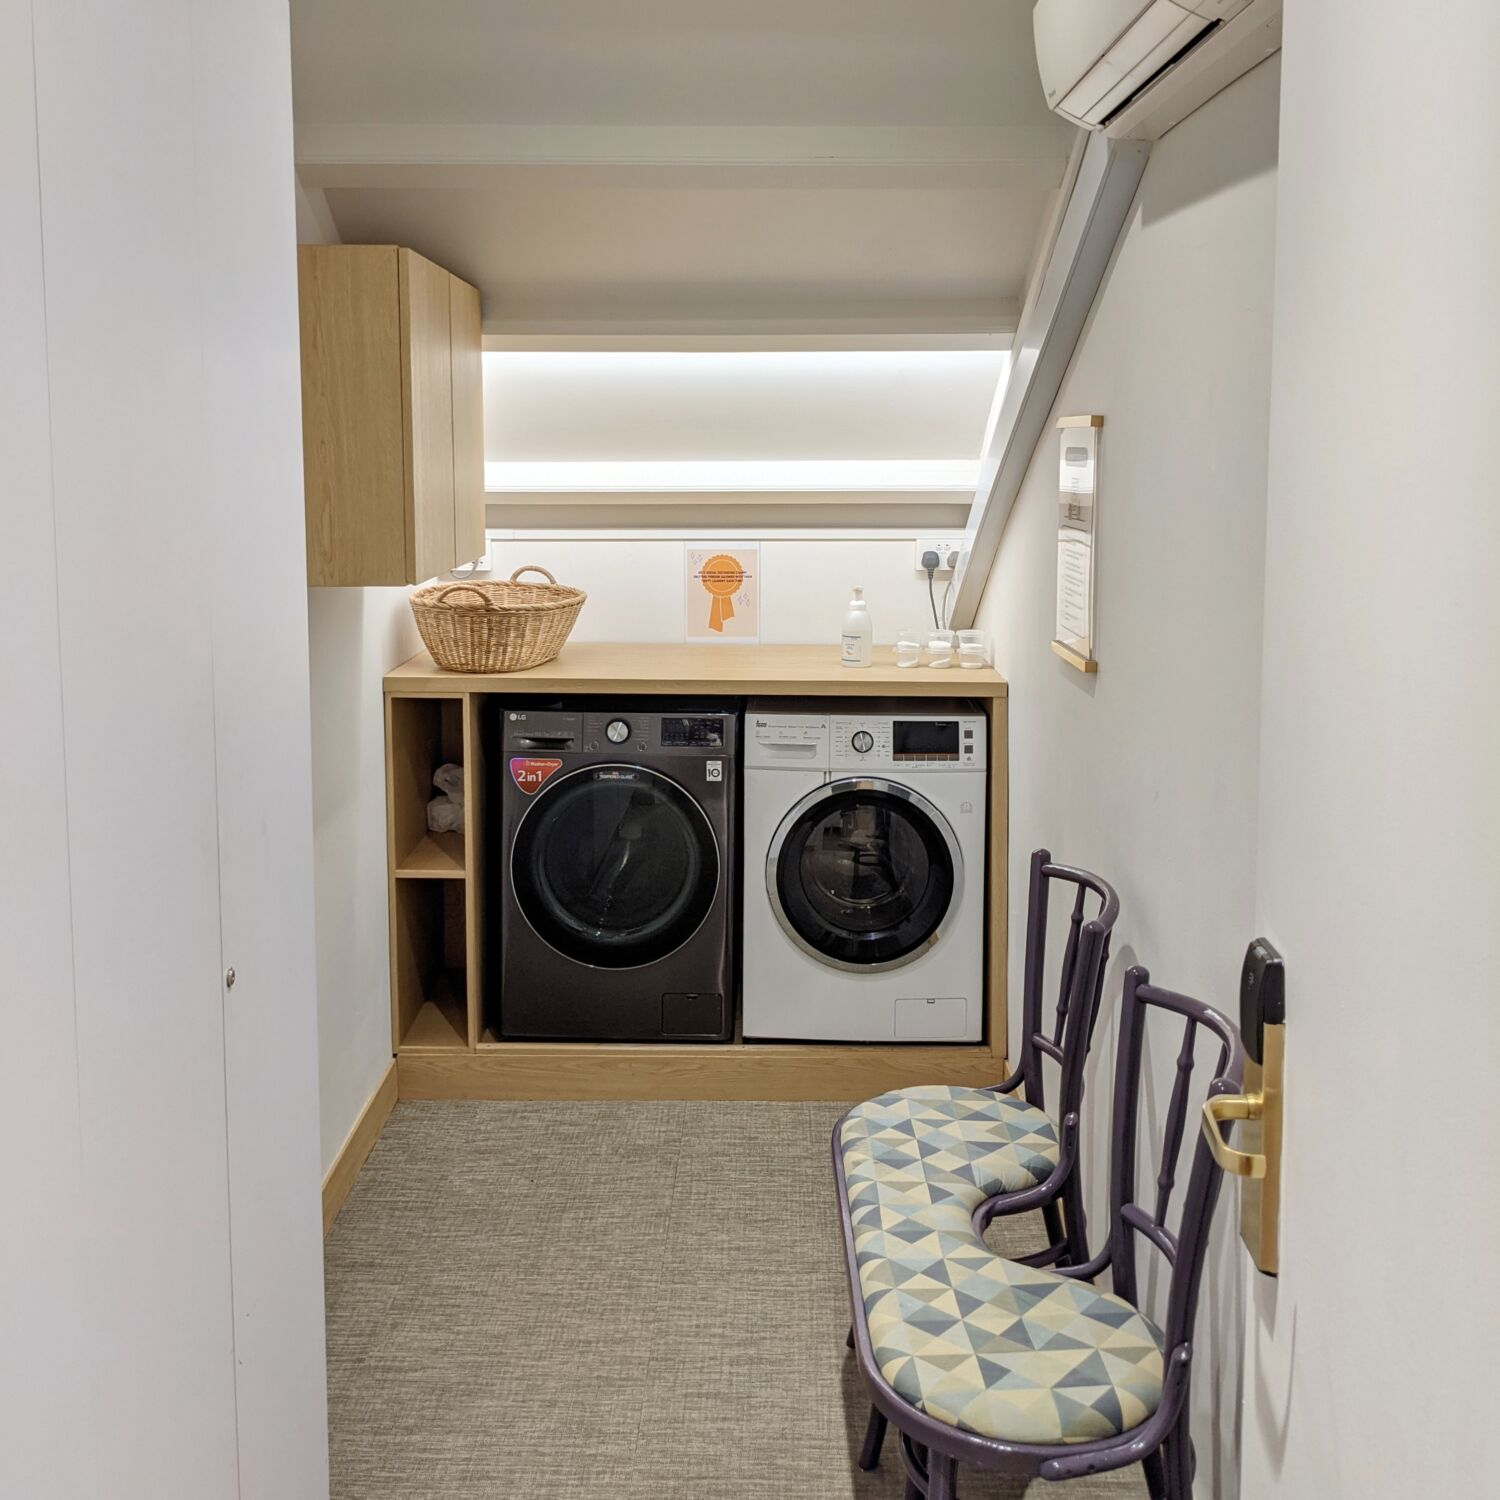 KēSa House, The Unlimited Collection by Oakwood Launderette